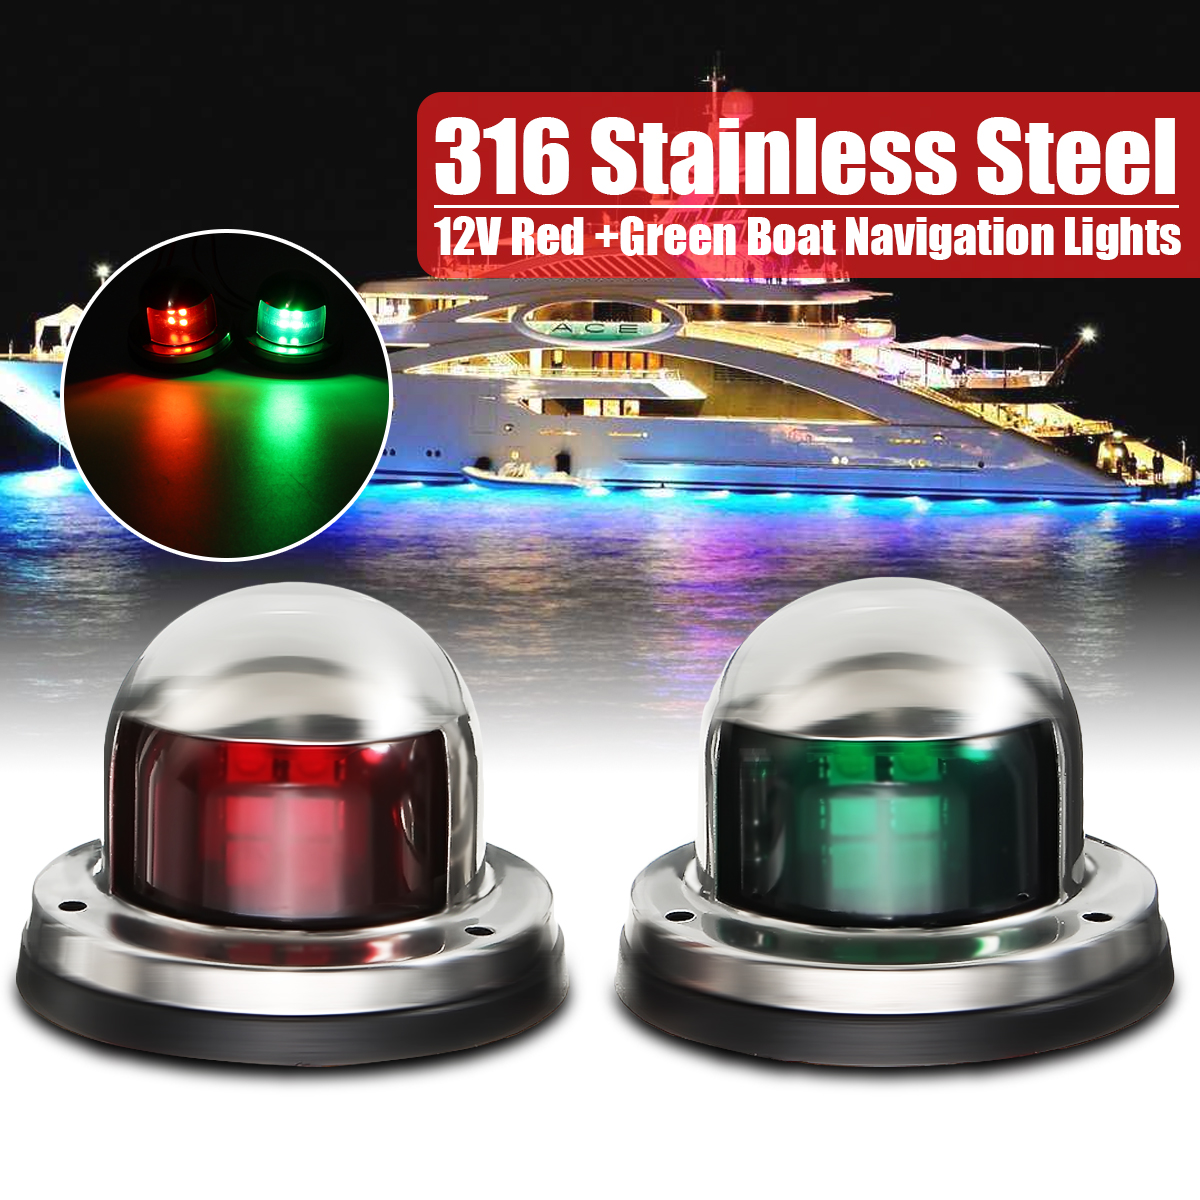 12V Yacht LED Navigation Lights Stainless Steel Bow Marine Boat Red Green Lamp